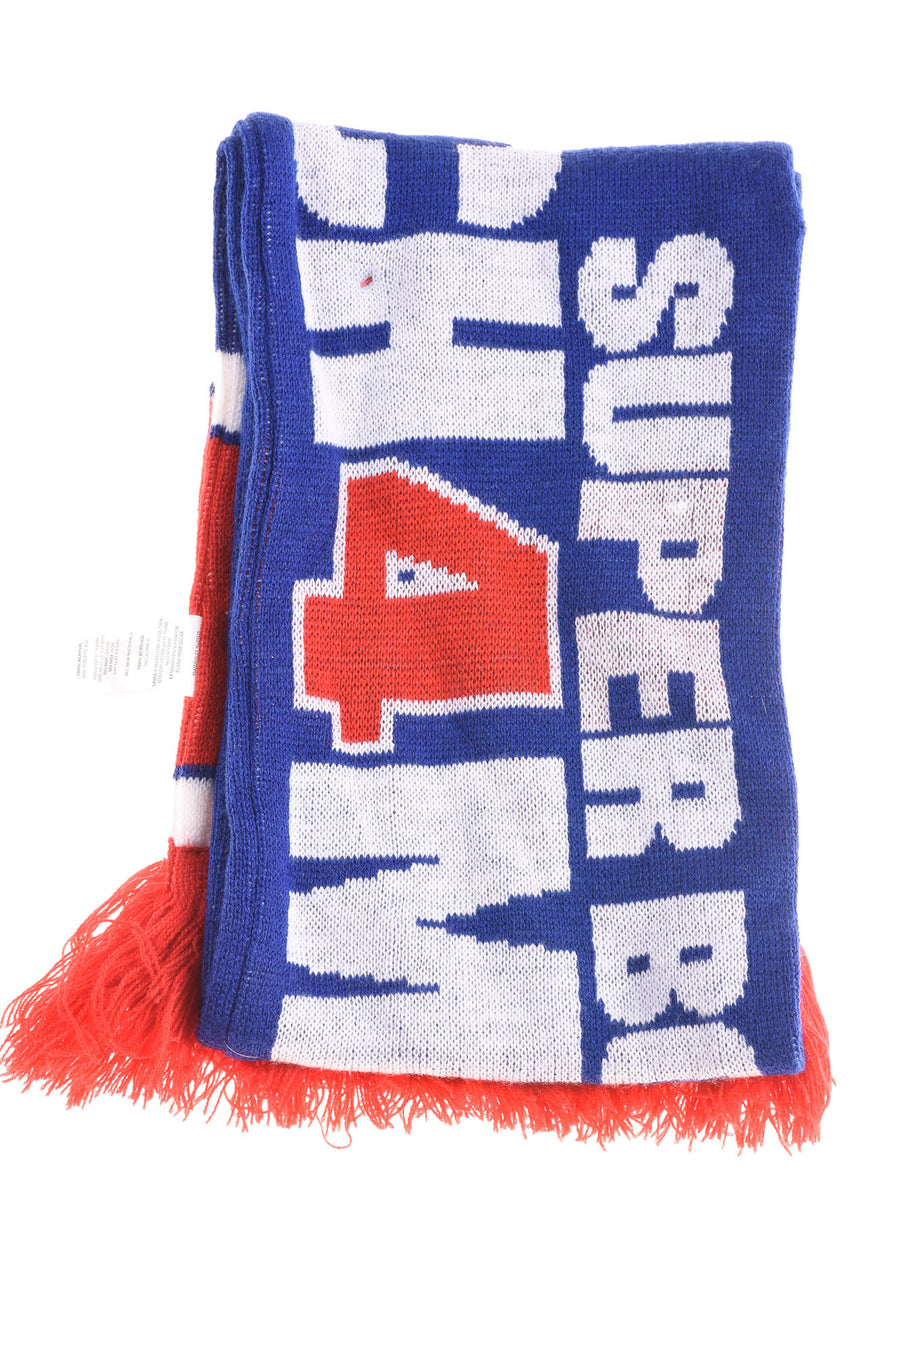 NEW NFL Men's Giants Scarf N/A Red, White, & Blue